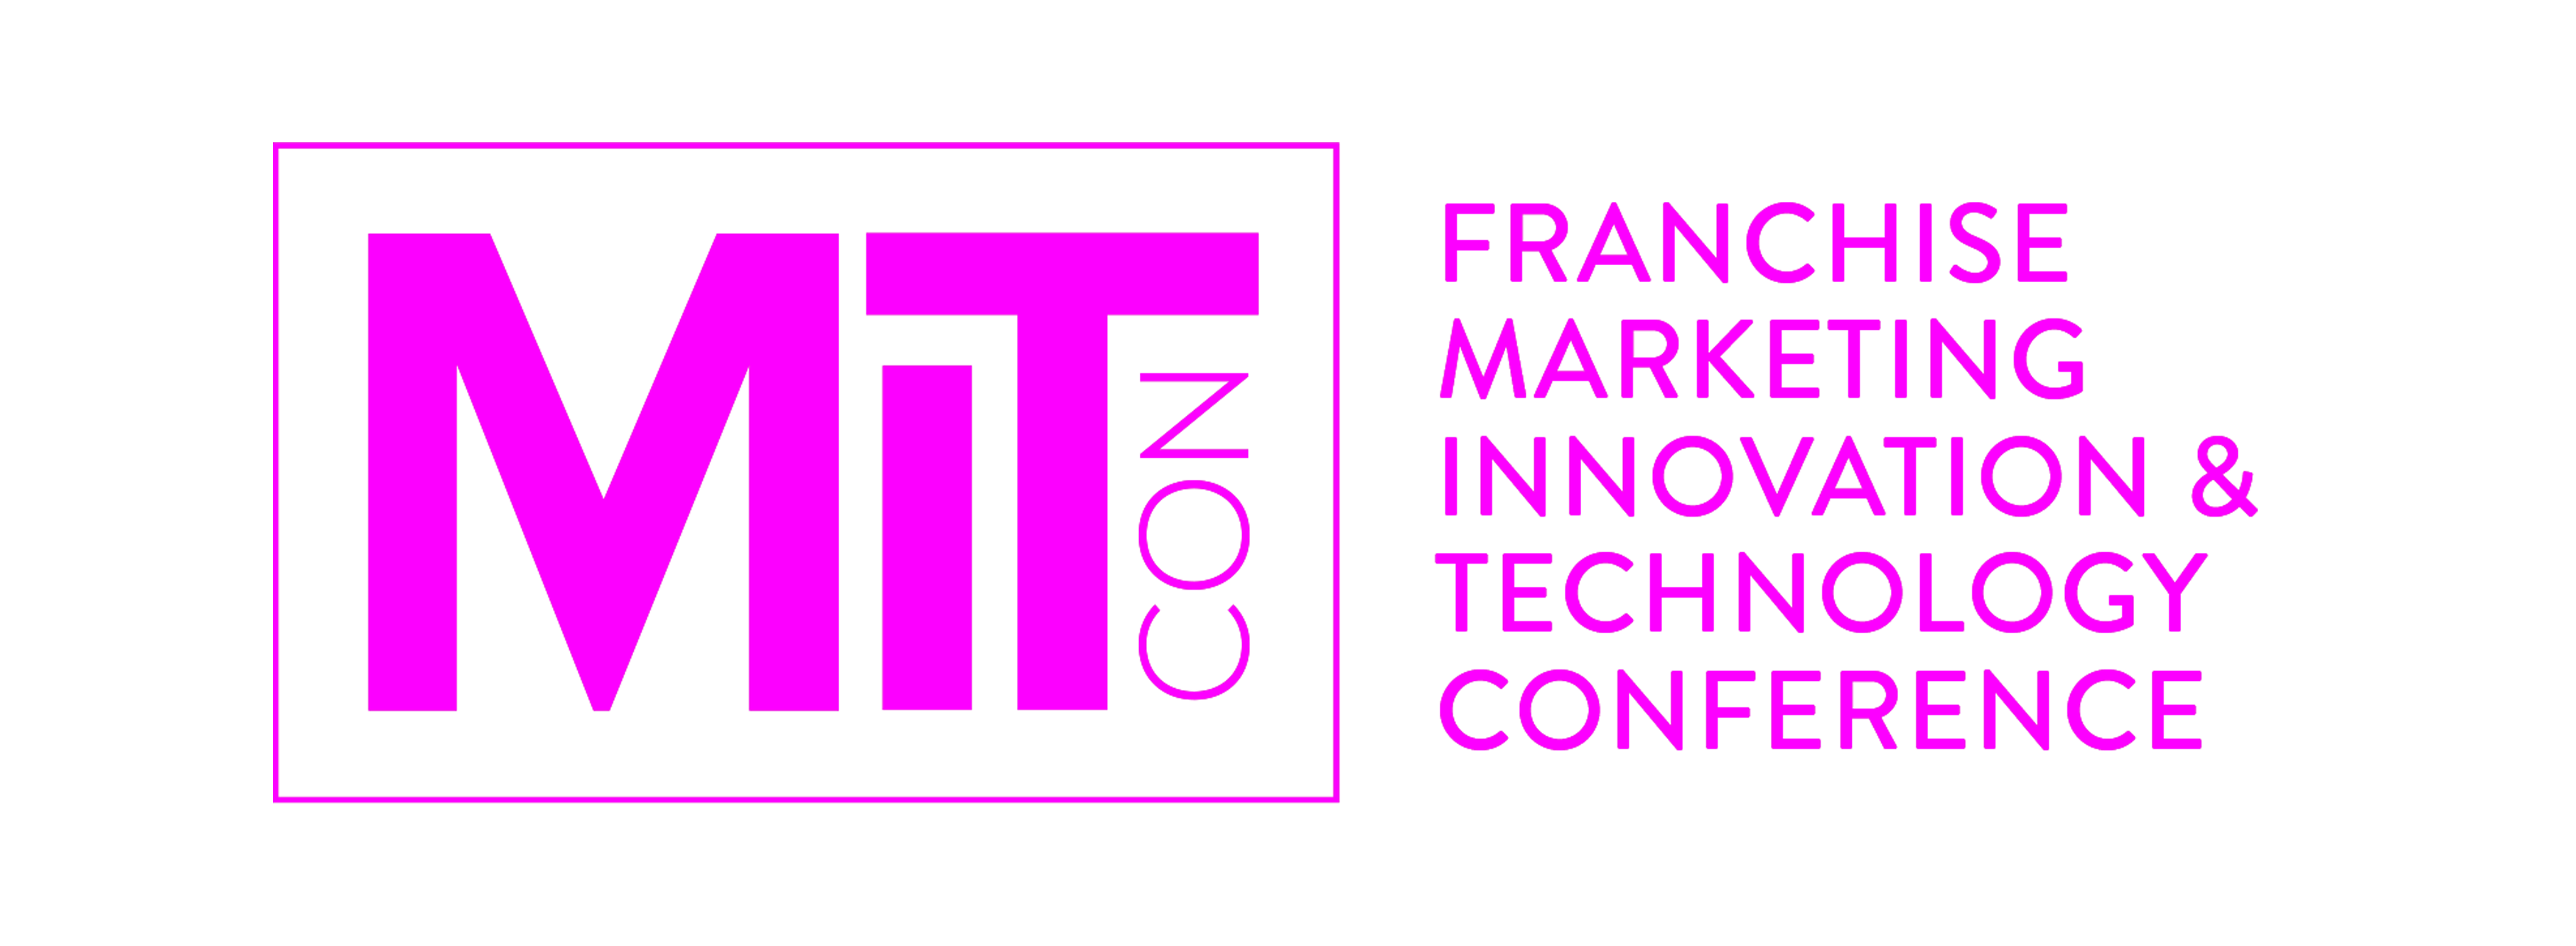 franchise marketing innovation and technology conference